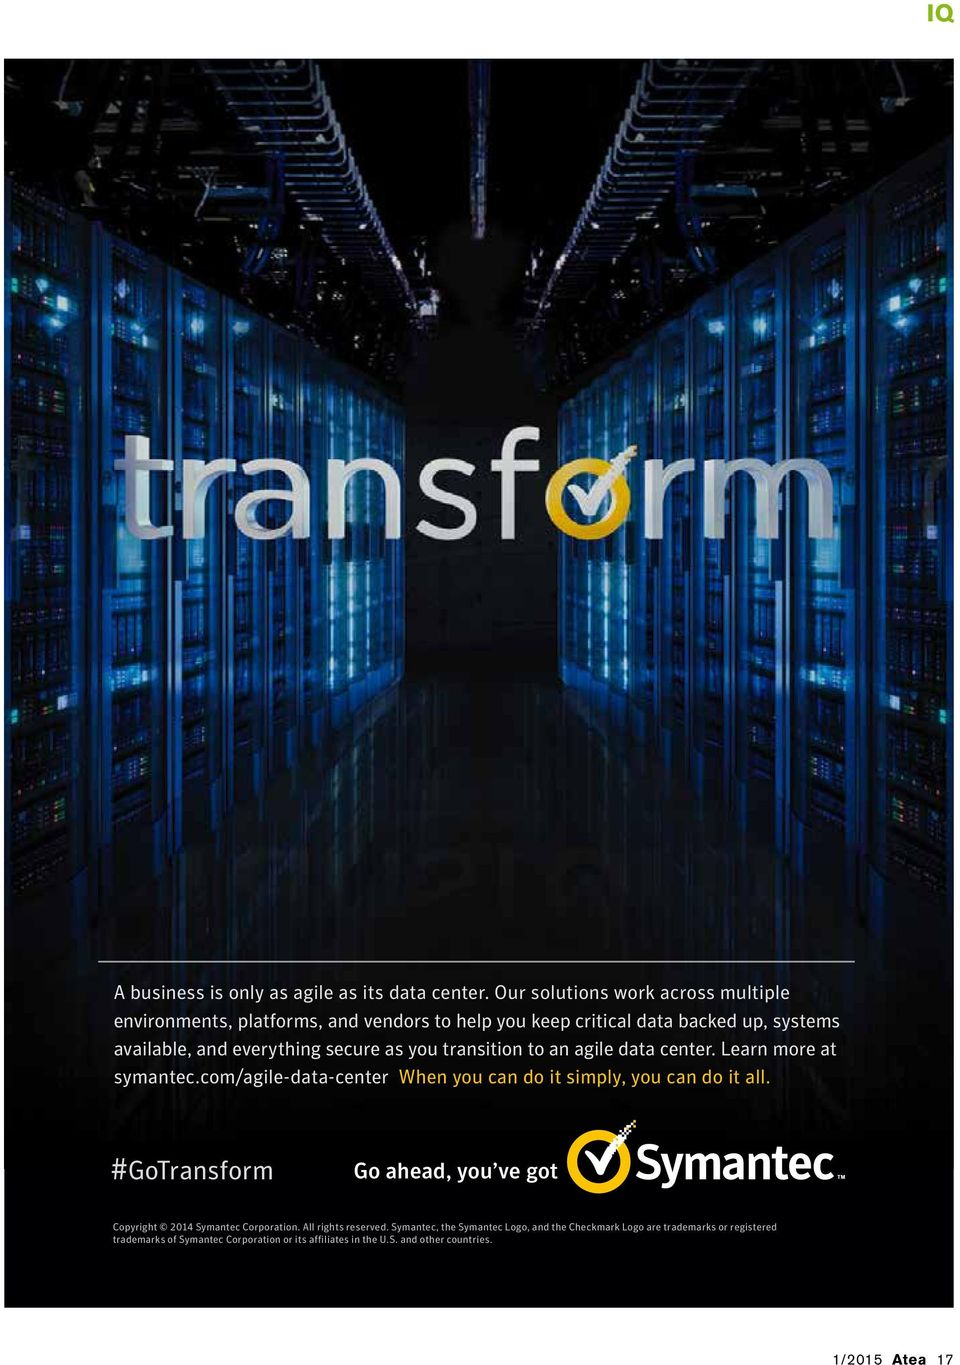 secure as you transition to an agile data center. Learn more at symantec.com/agile-data-center When you can do it simply, you can do it all.